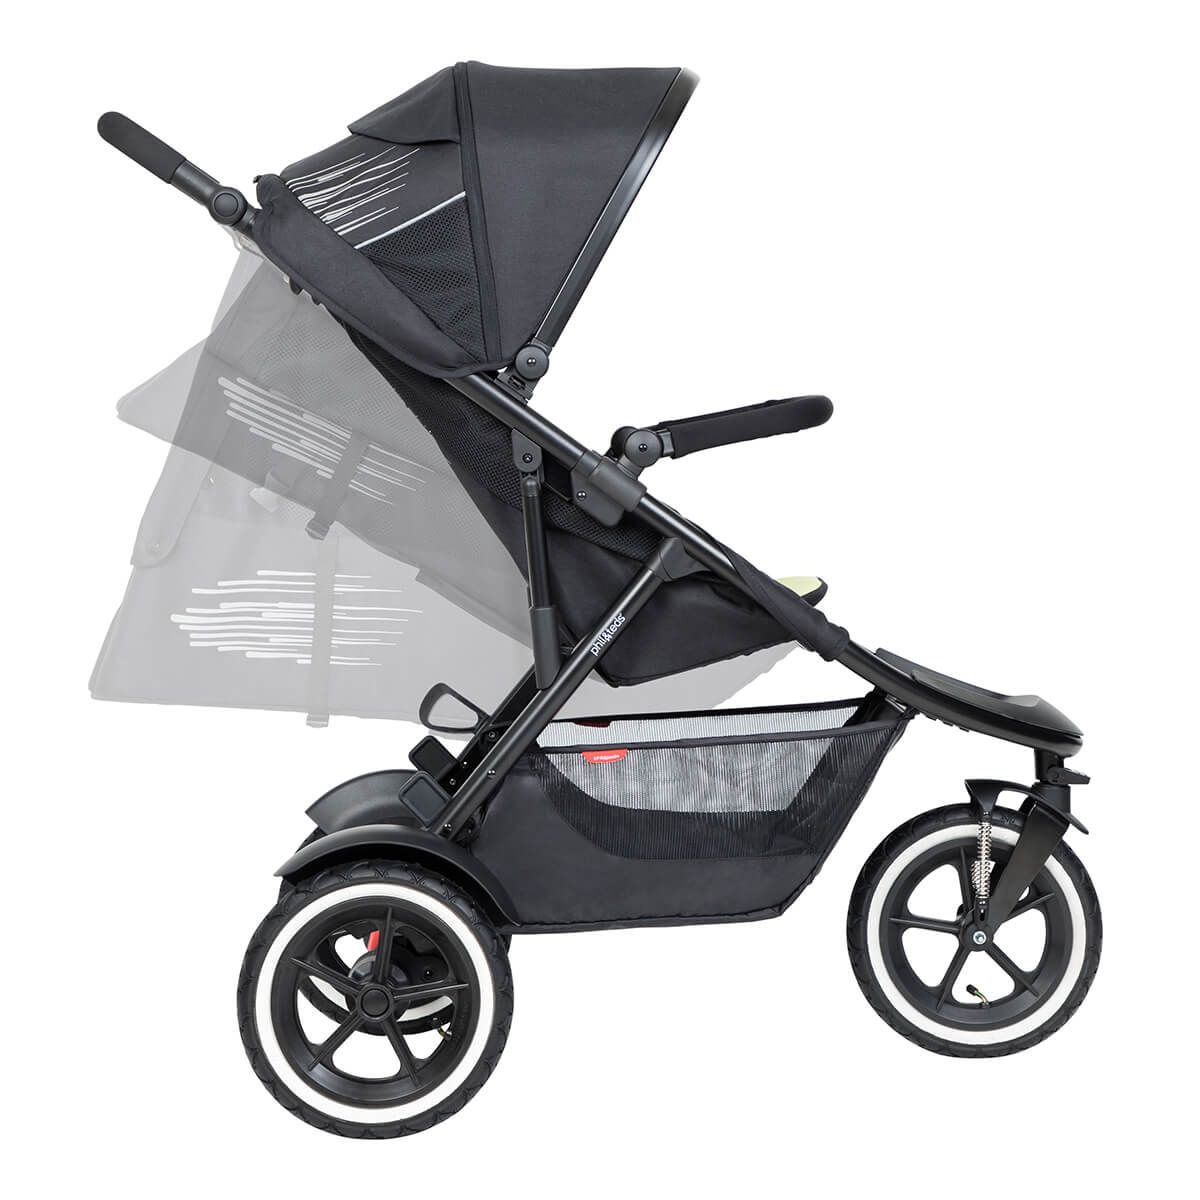 https://cdn.accentuate.io/4546157248617/19119322628201/philteds-sport-buggy-can-recline-in-multiple-angles-including-full-recline-for-newborn-baby-v1626484907218.jpg?1200x1200